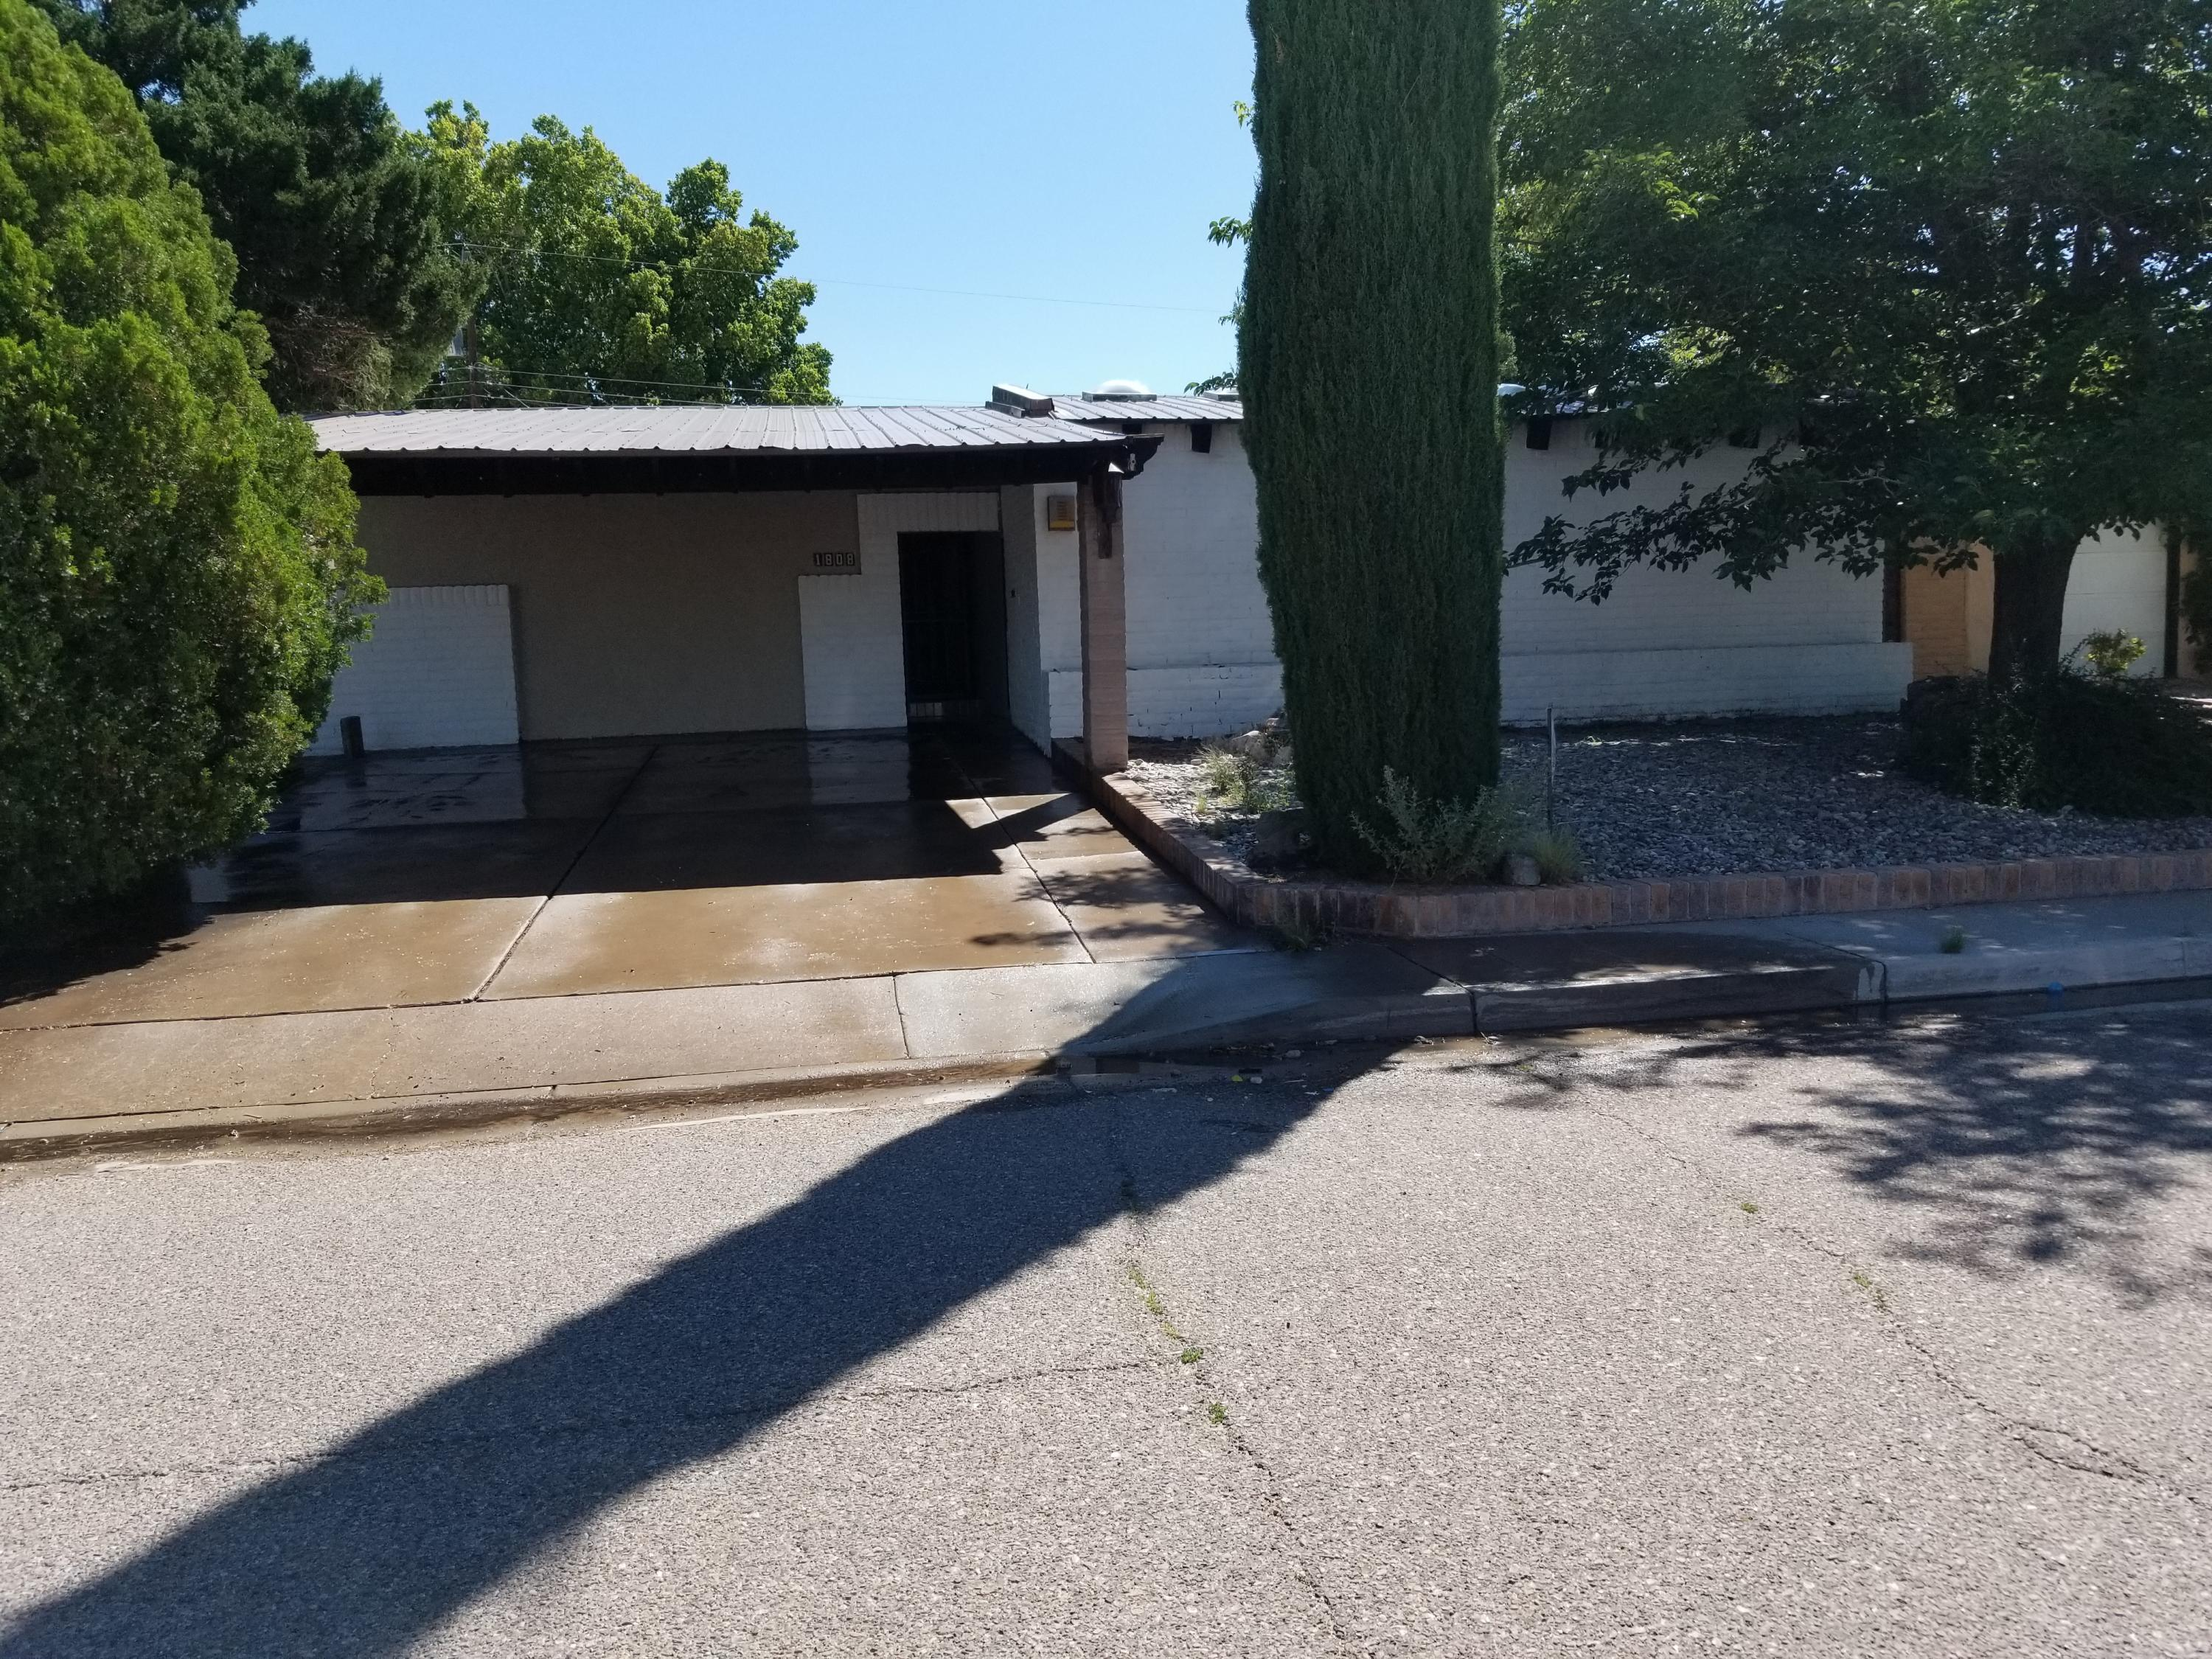 Newly remodeled home with new flooring, Kitchen , Bathrooms , paint inside, Windows, Doors and HVAC heating cooling system. This home has 2 spacious living areas both with wood burning fireplaces. Nice SW feel to this house but with a modern touch. Large front and back yard are a great addition to this home.  This house is ready for you to make it yours!